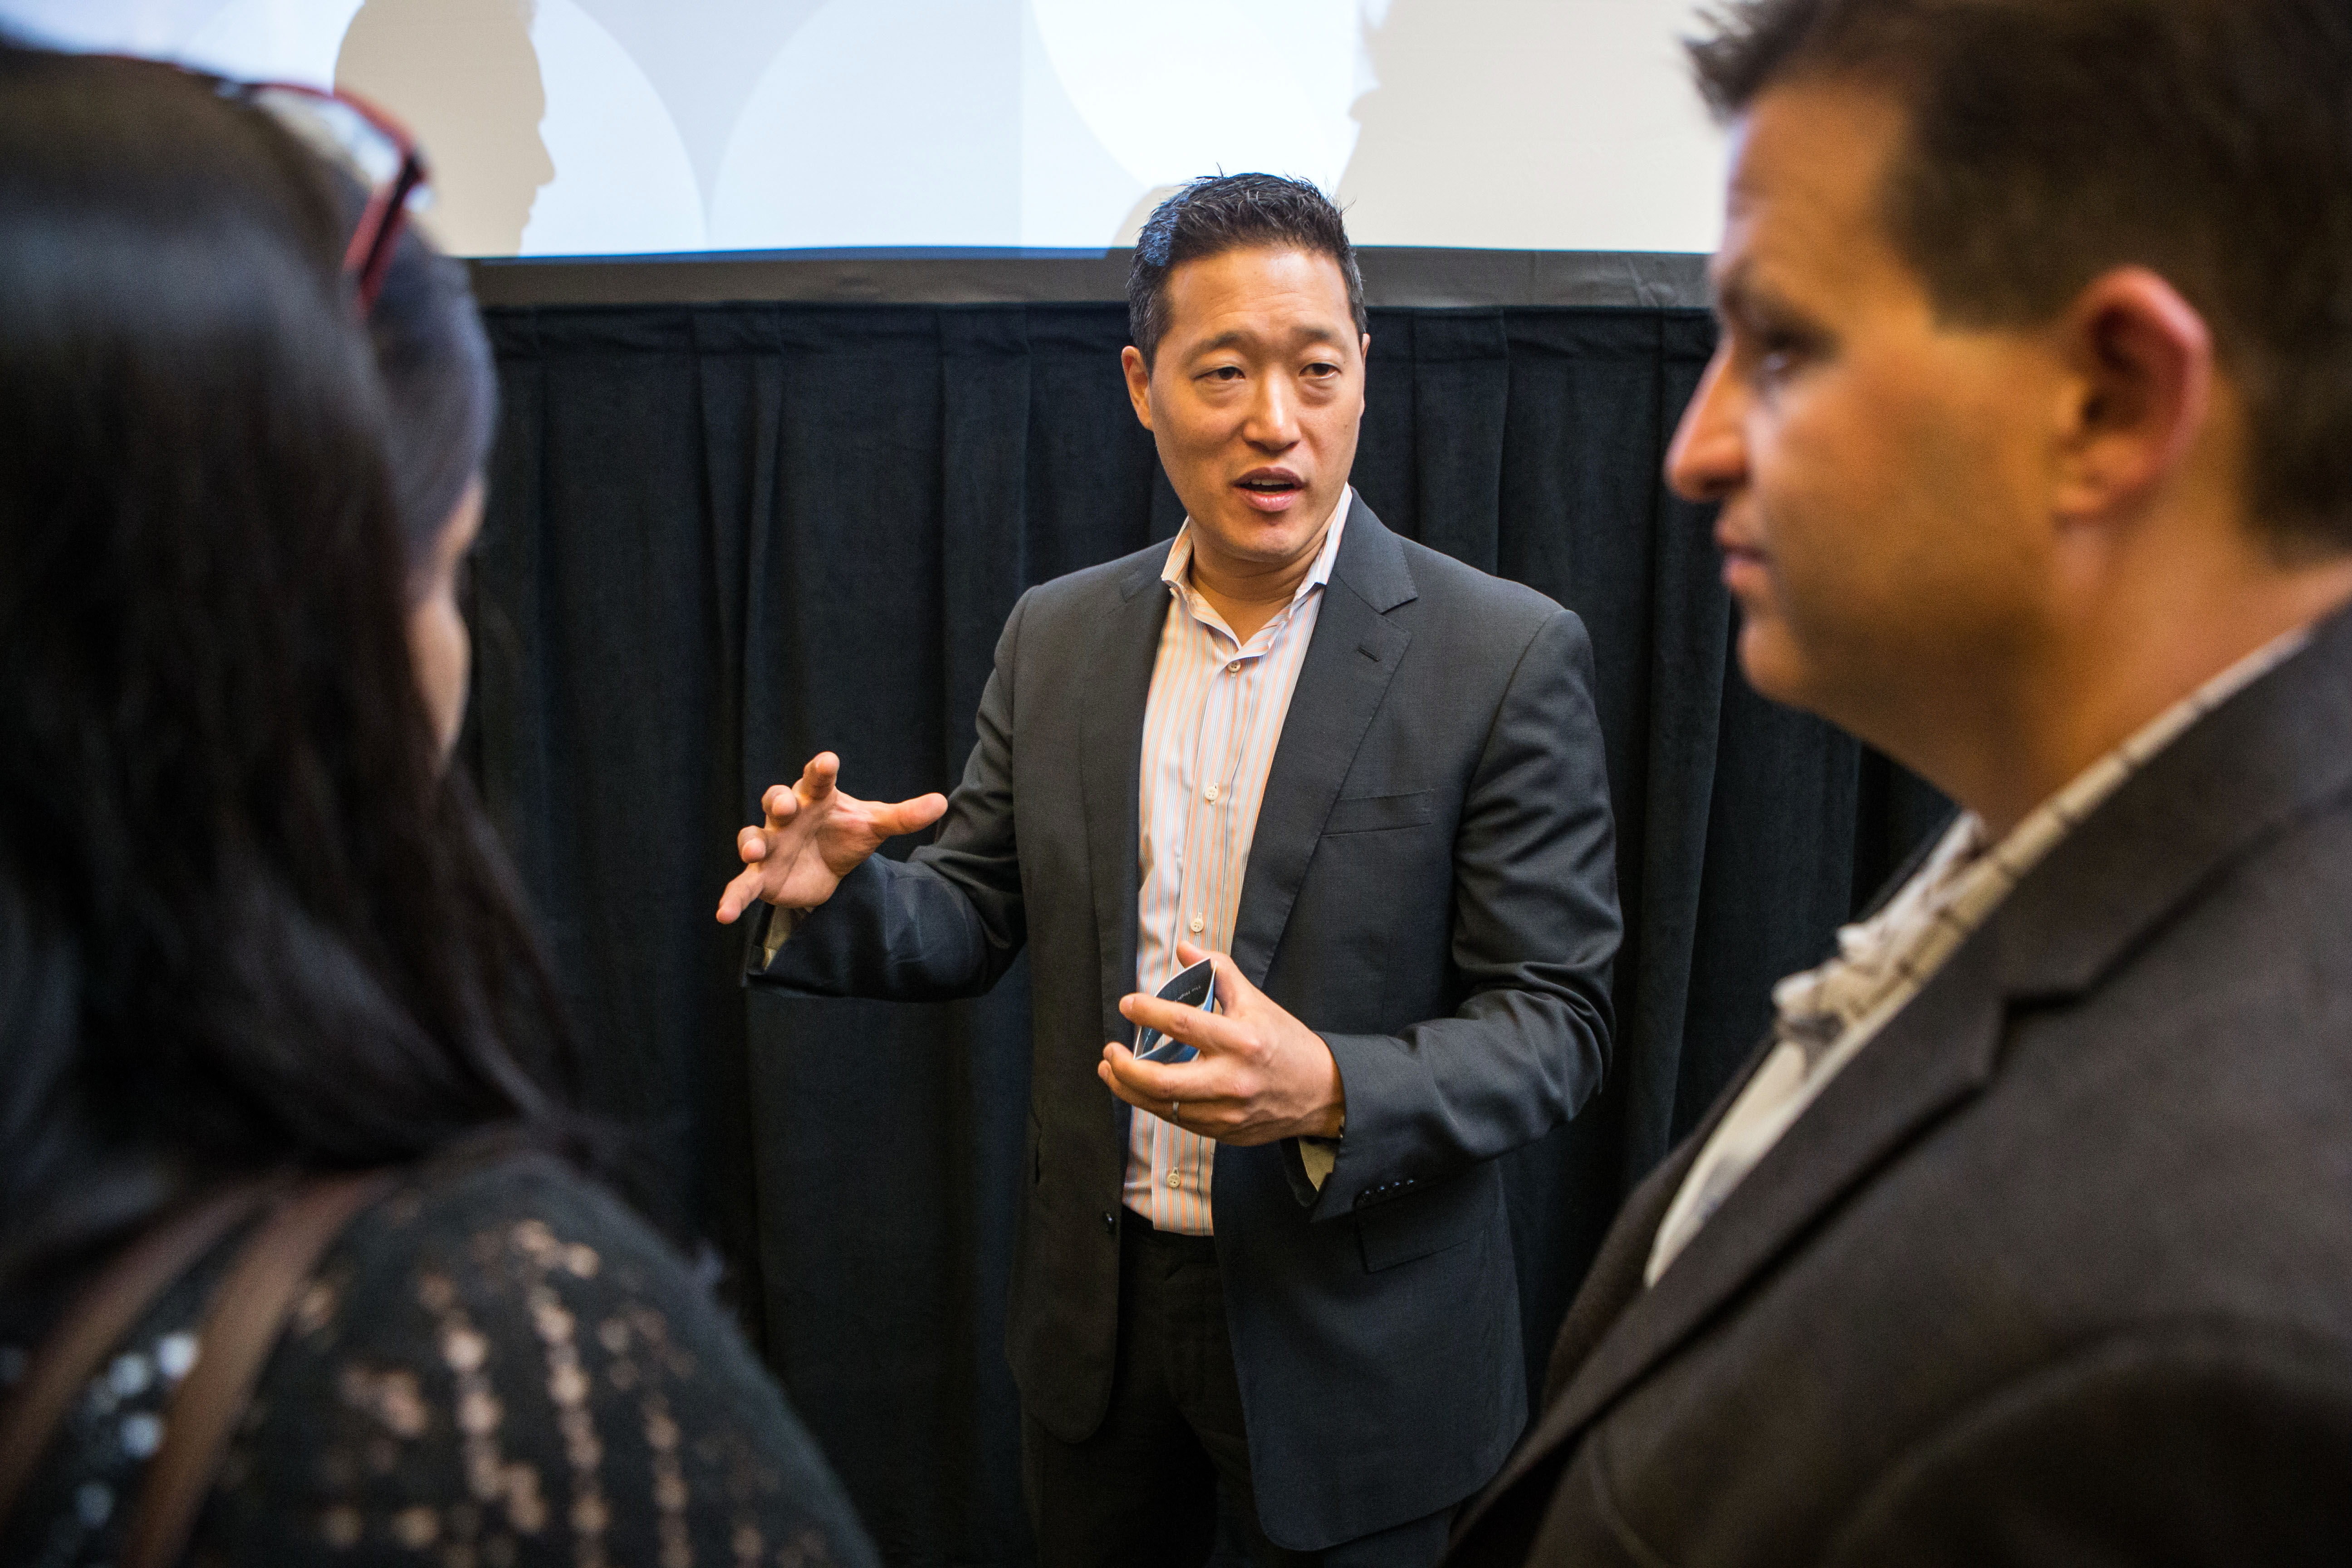 Charlie Kim WHY AND HOW DO LEADERS FAIL?